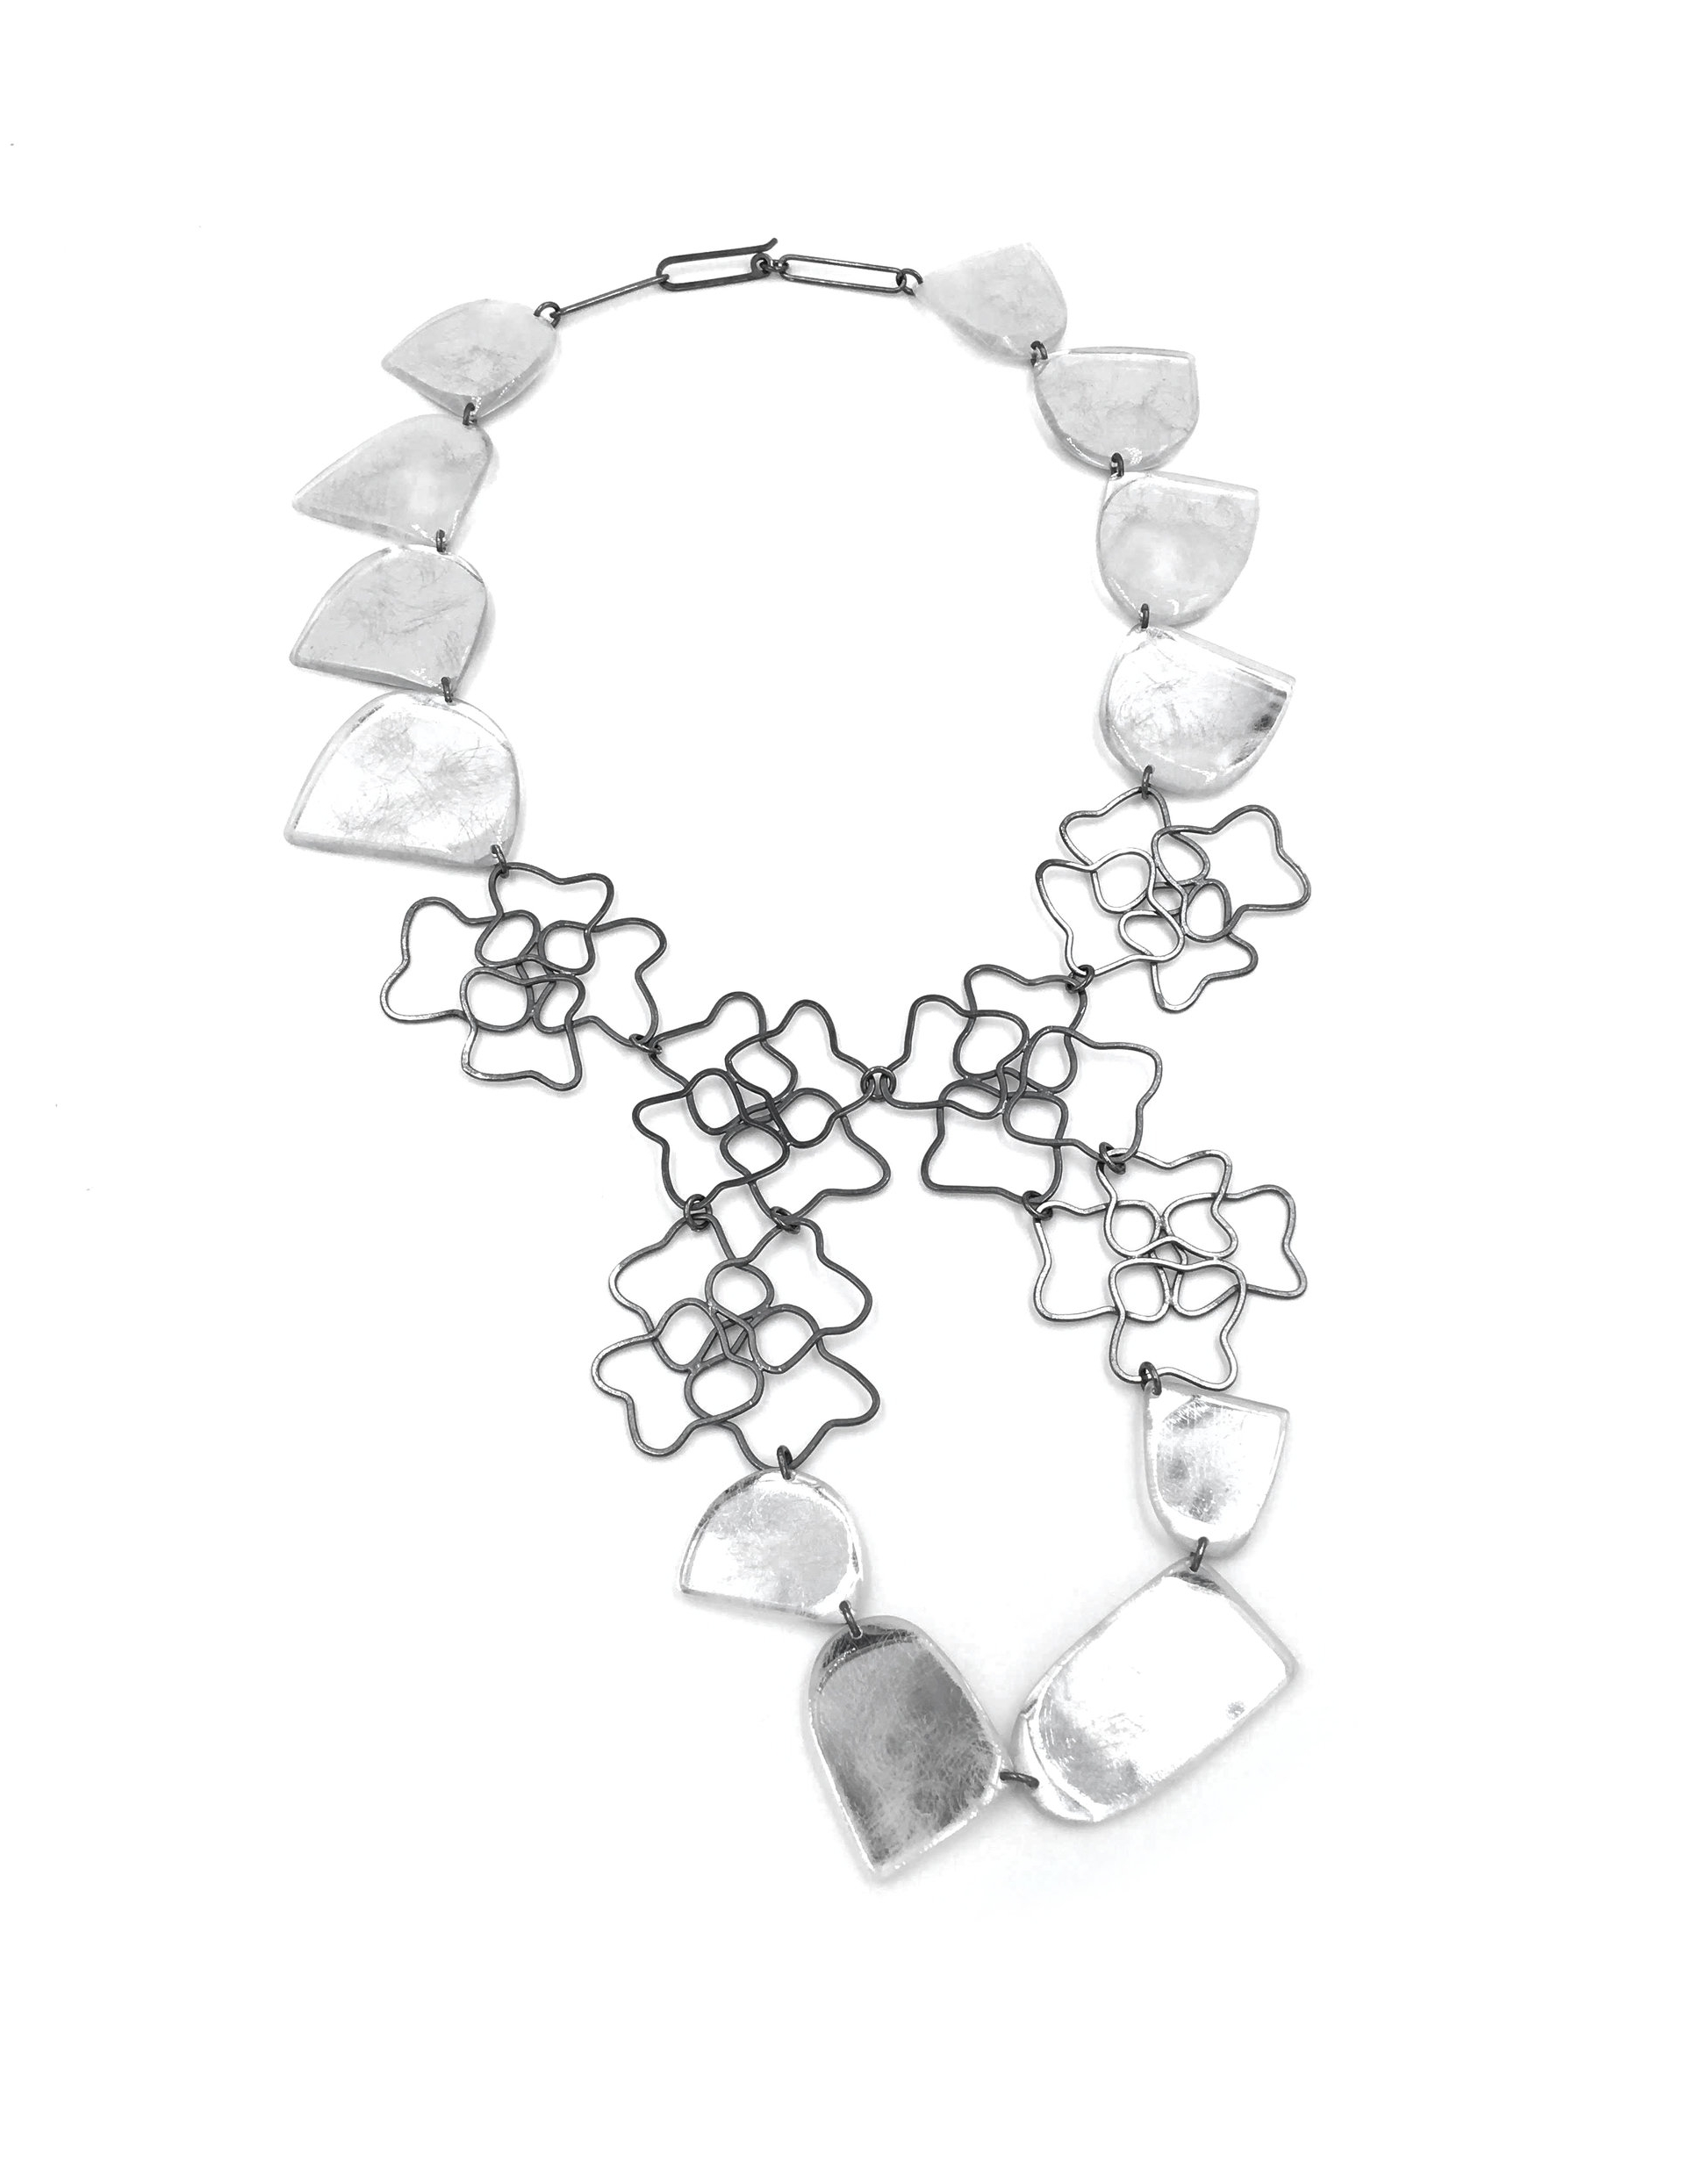 Double Transition Necklace